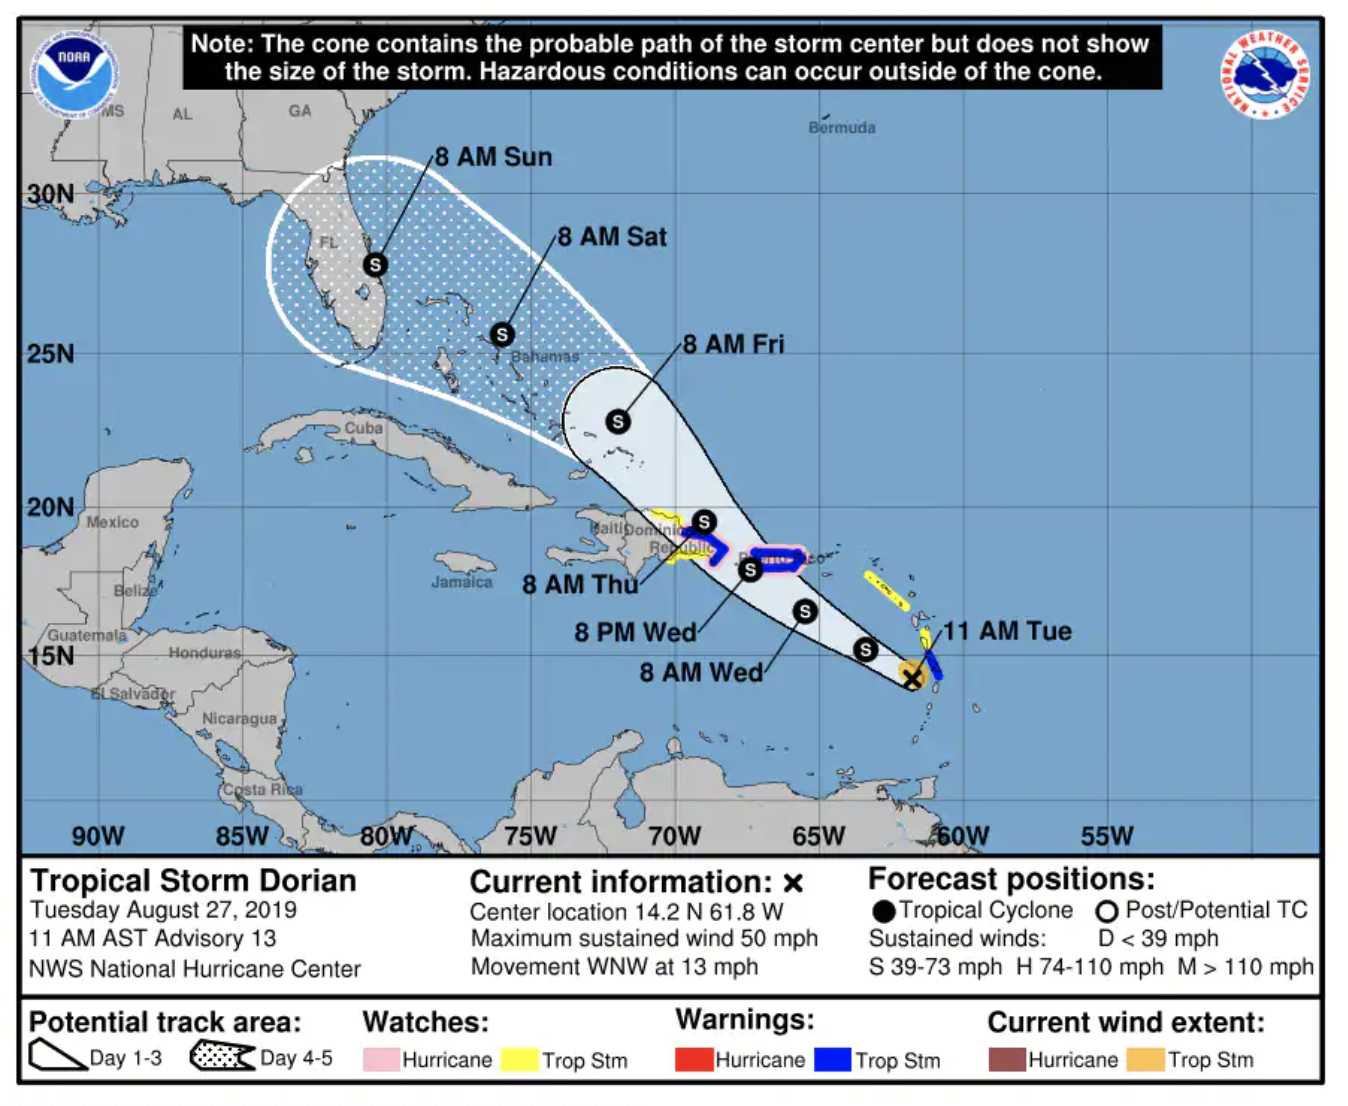 A critical moment for Tropical Storm Dorian is just hours away